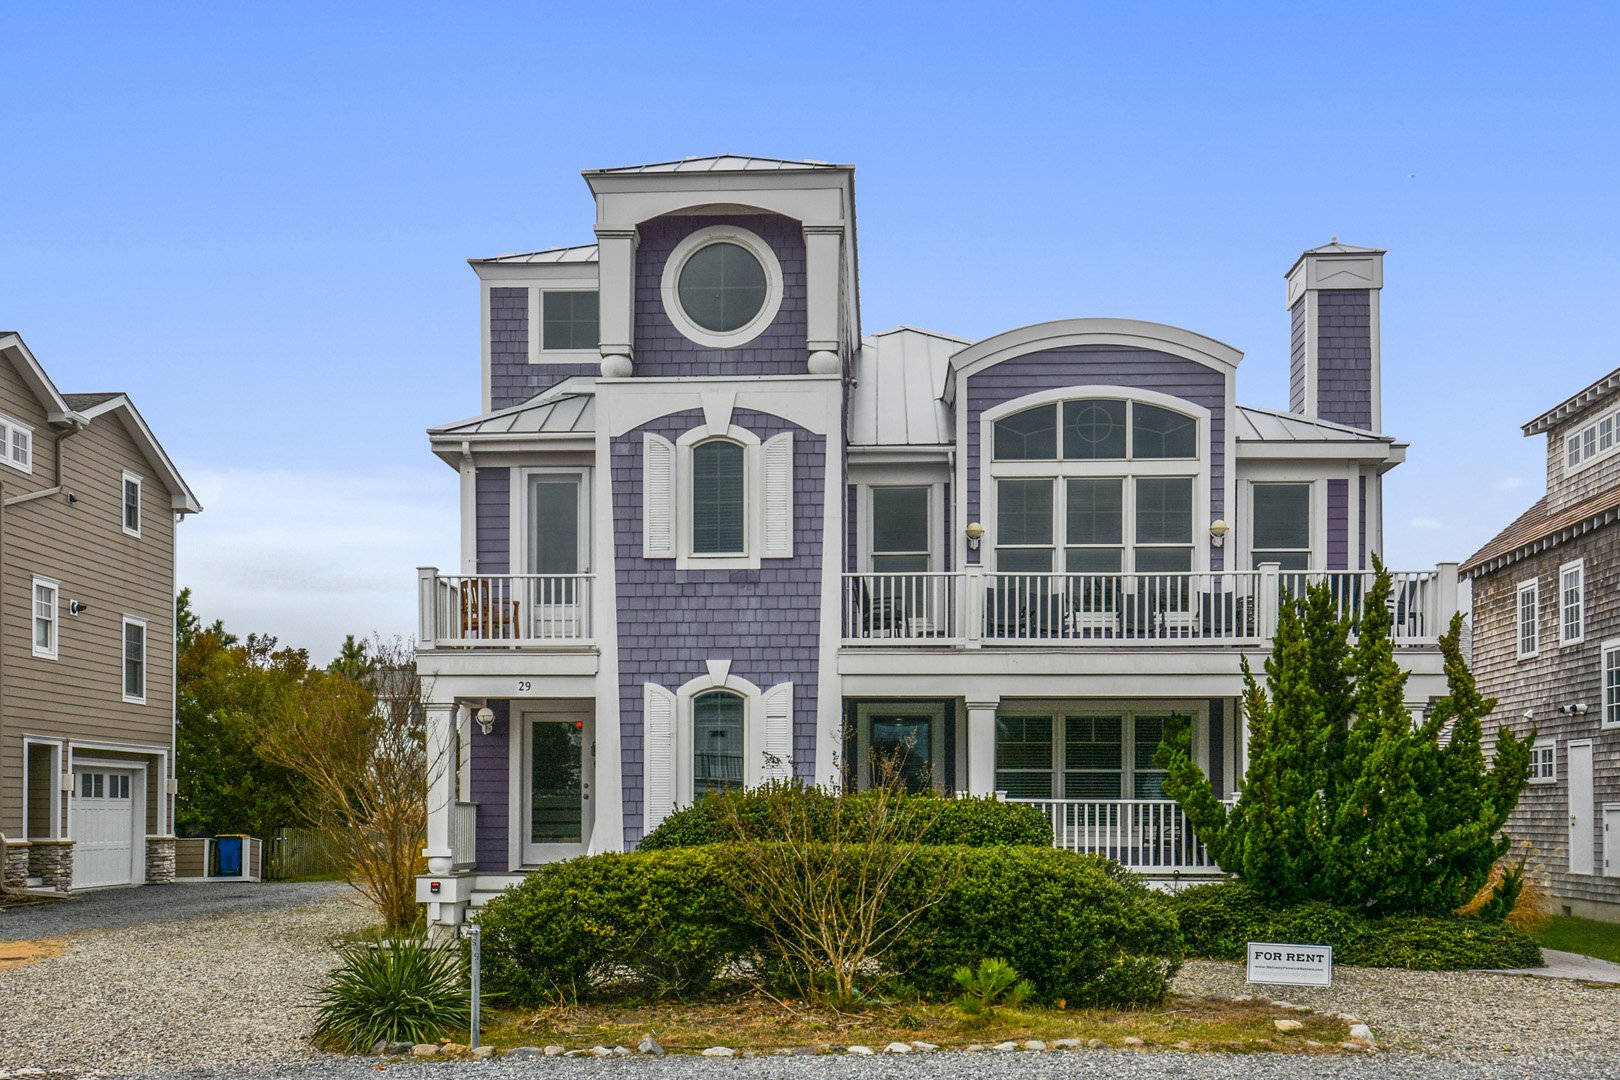 29 S. Atlantic Ave, Bethany Beach Delaware Rental Listing